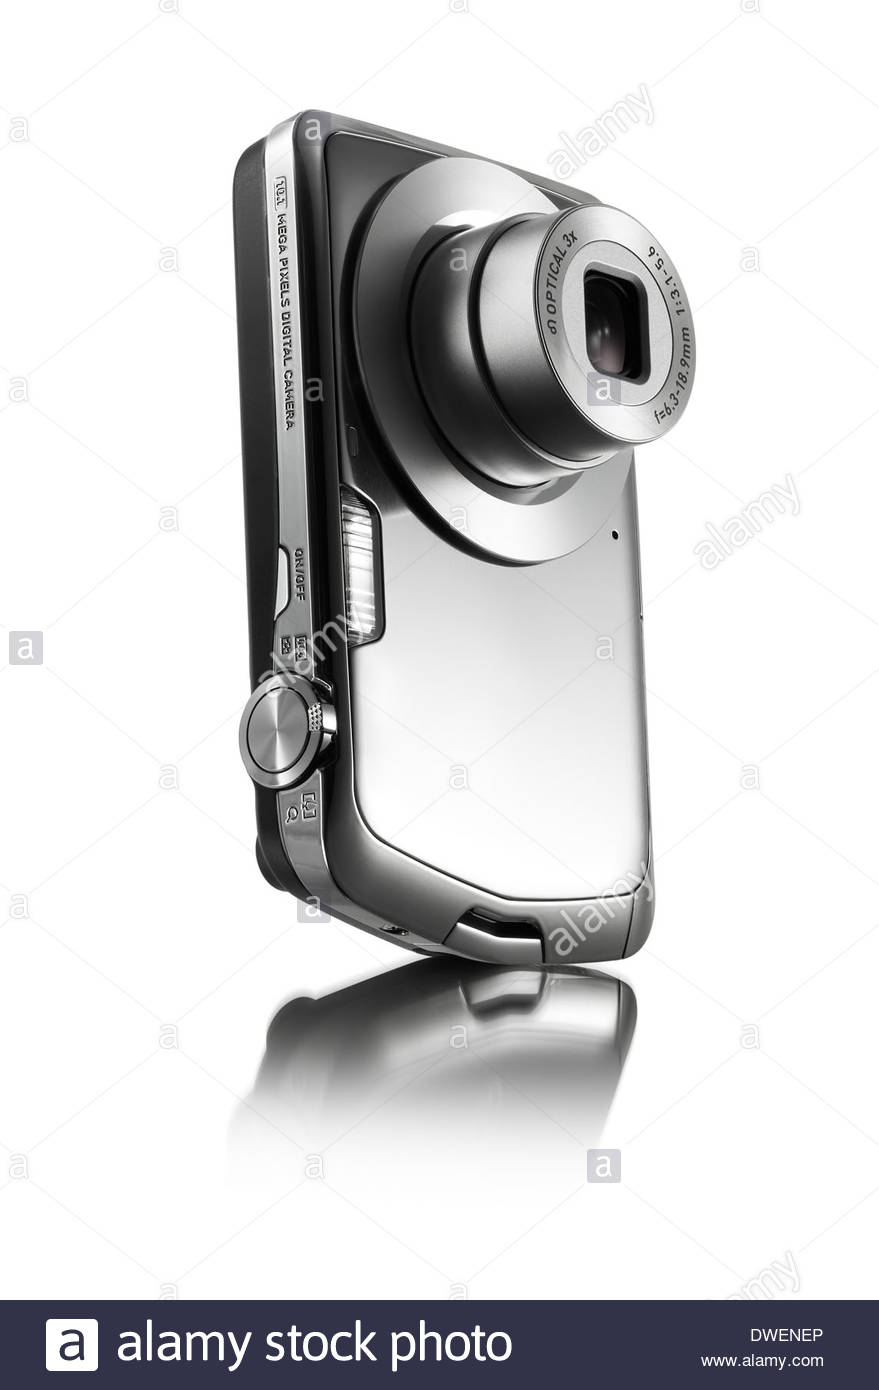 shiny silver or stainless steel compact pocket personal digital camera with flash and zoom lens - Stock Image